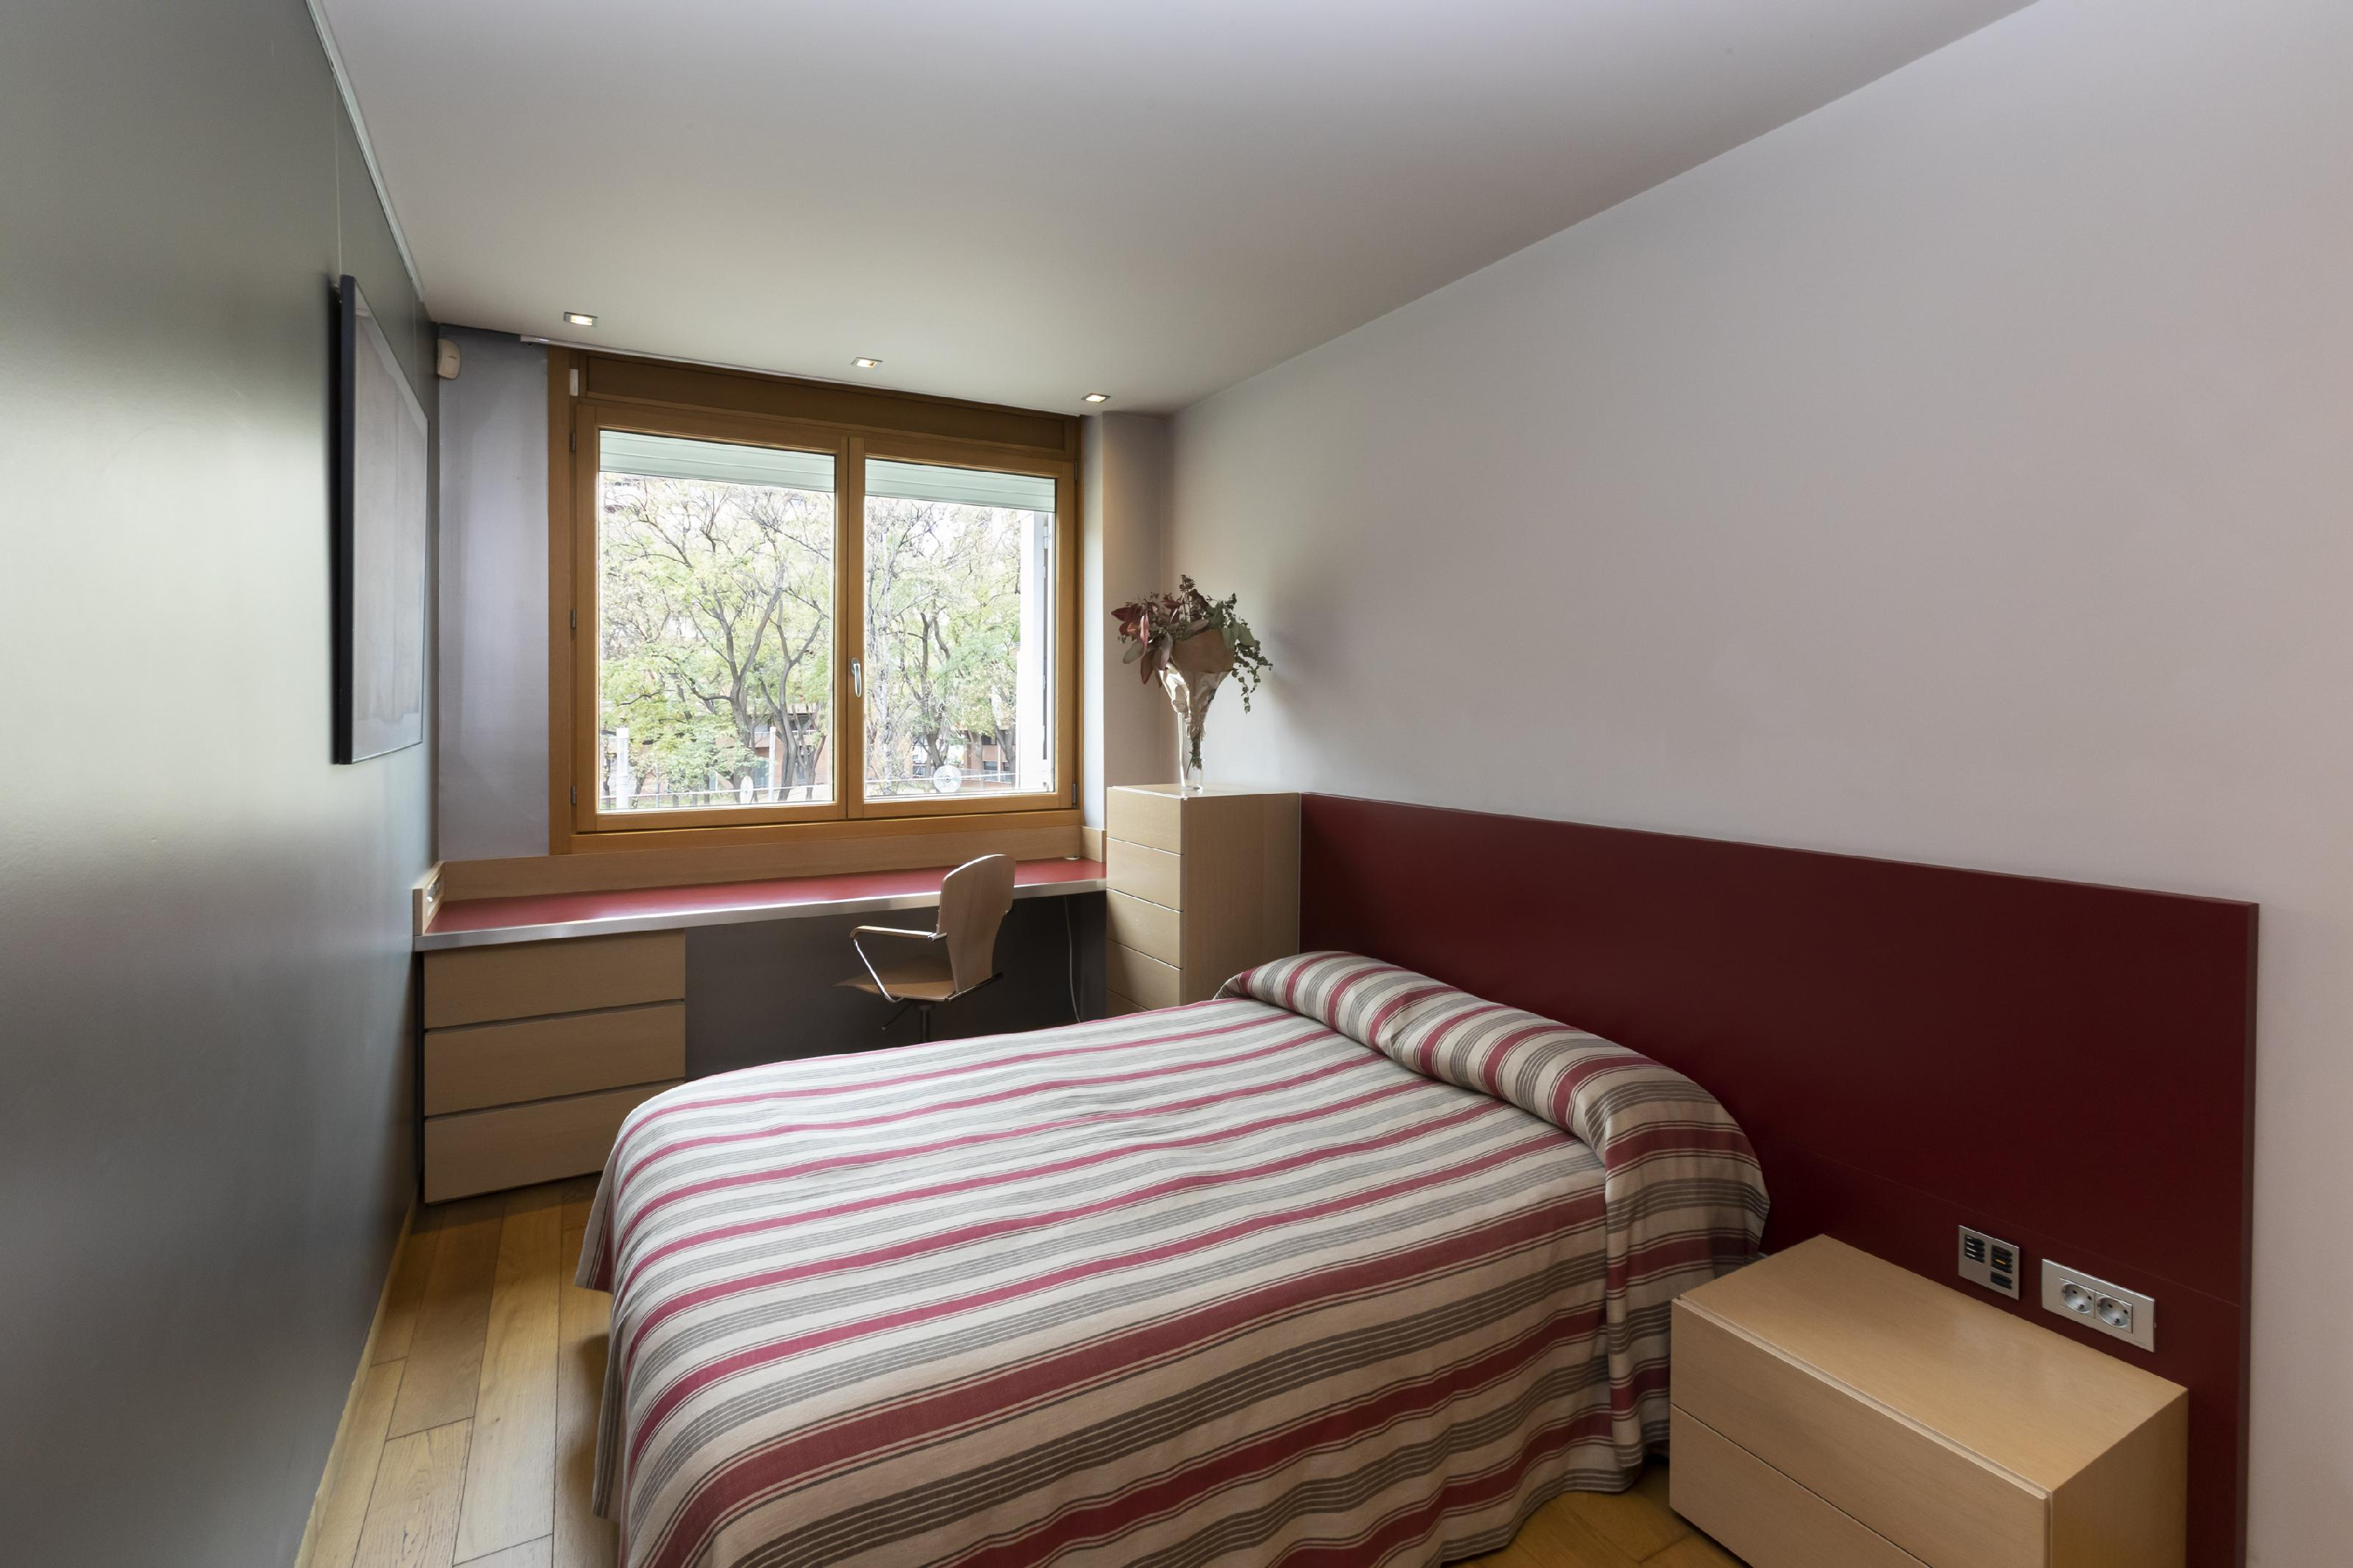 247020 Flat for sale in Les Corts, Les Corts 27